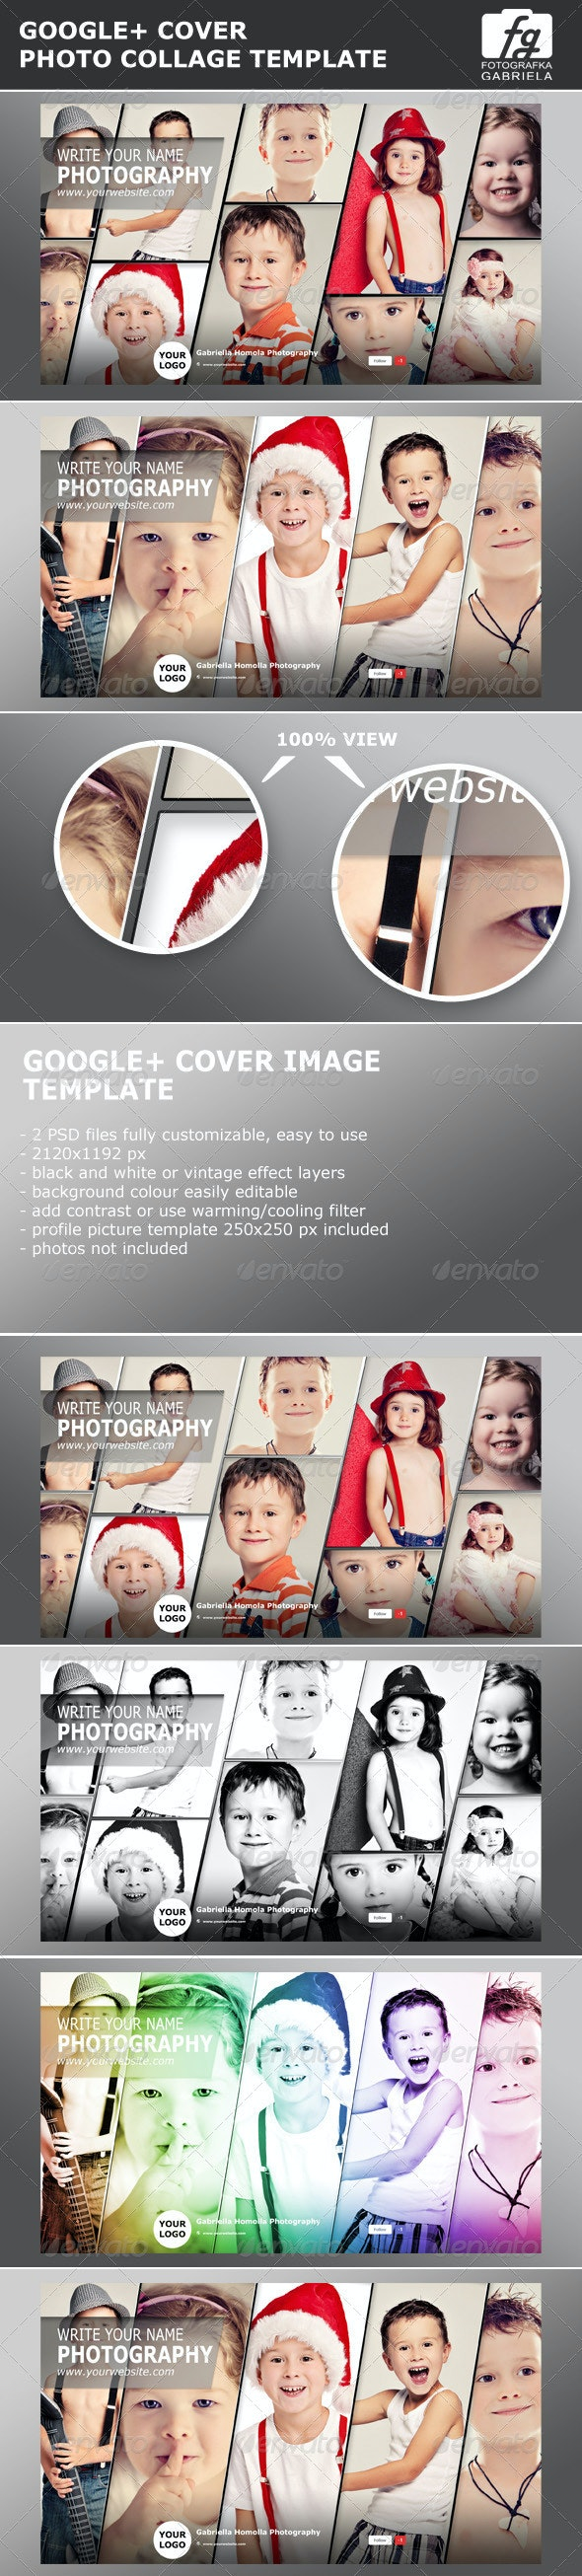 Google+ Photo Collage Photoshop Template - Miscellaneous Social Media